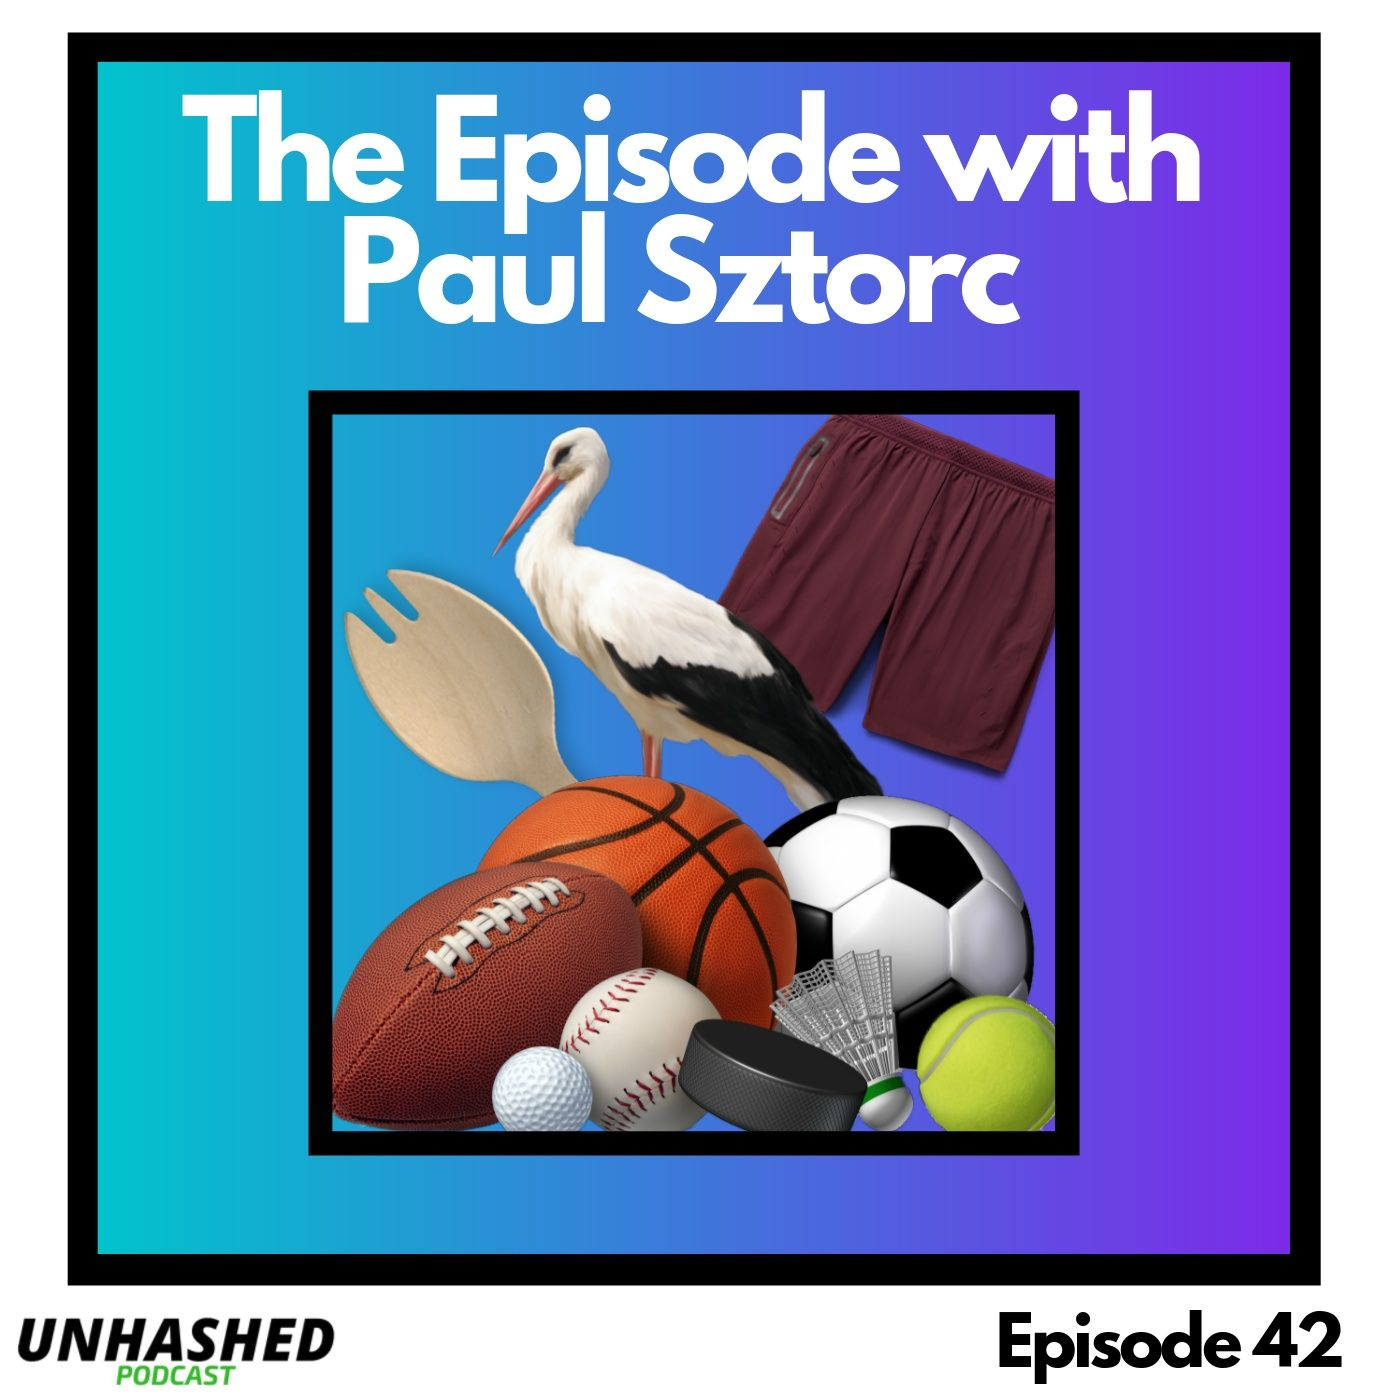 That Episode with Paul Sztorc In It